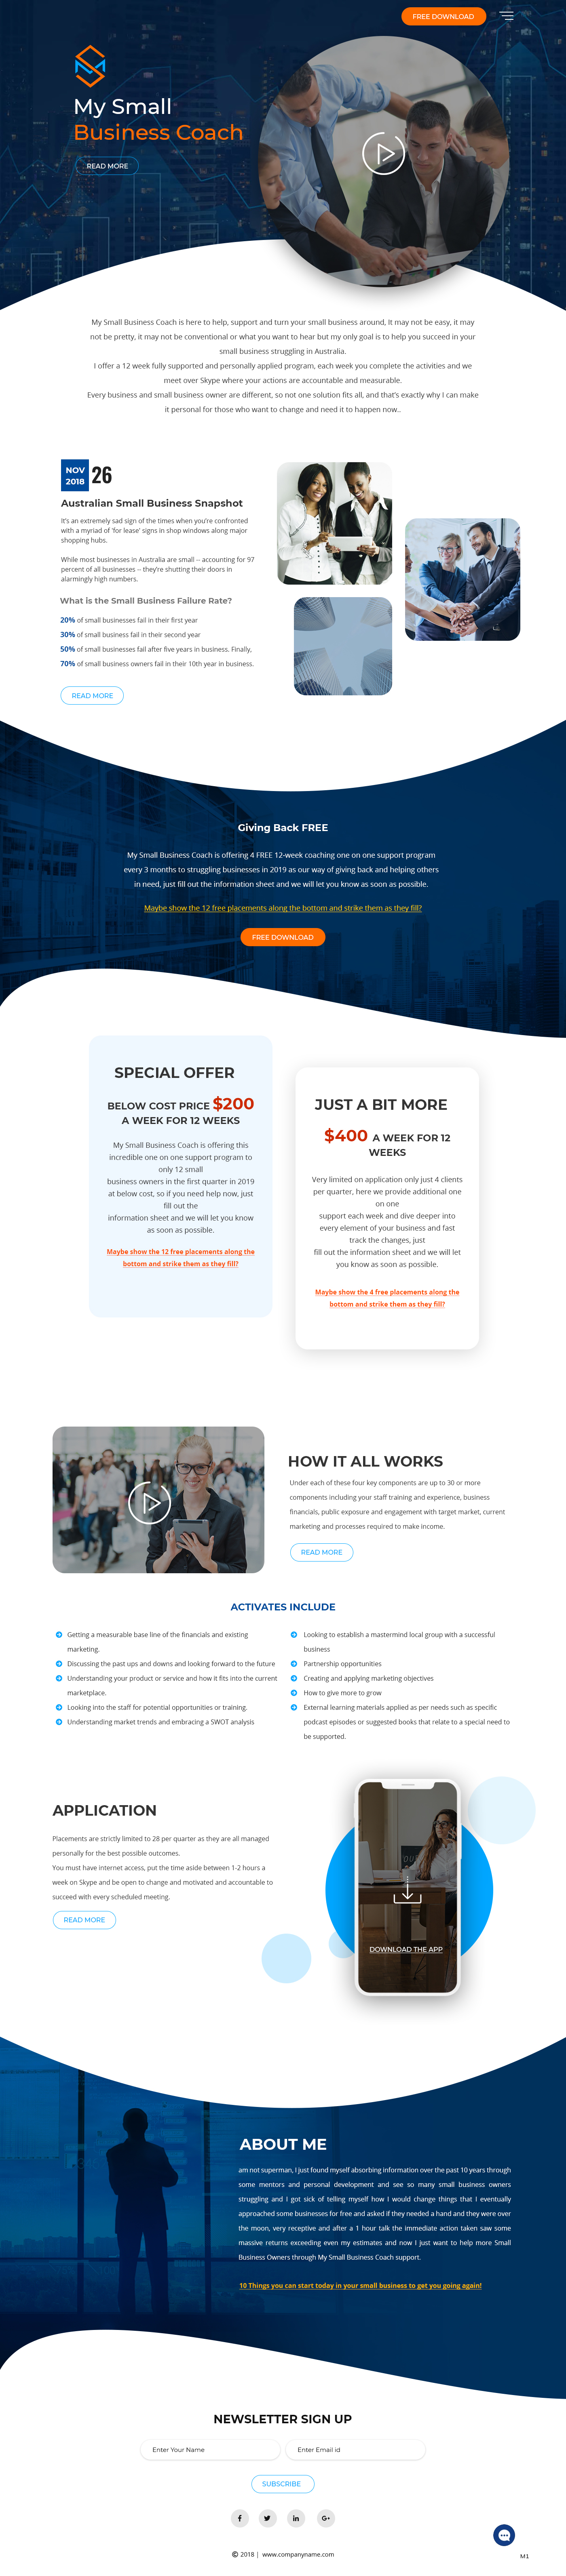 Modern Professional Business Consultant Web Design For My Small Business Coach By Pb Design 20640036